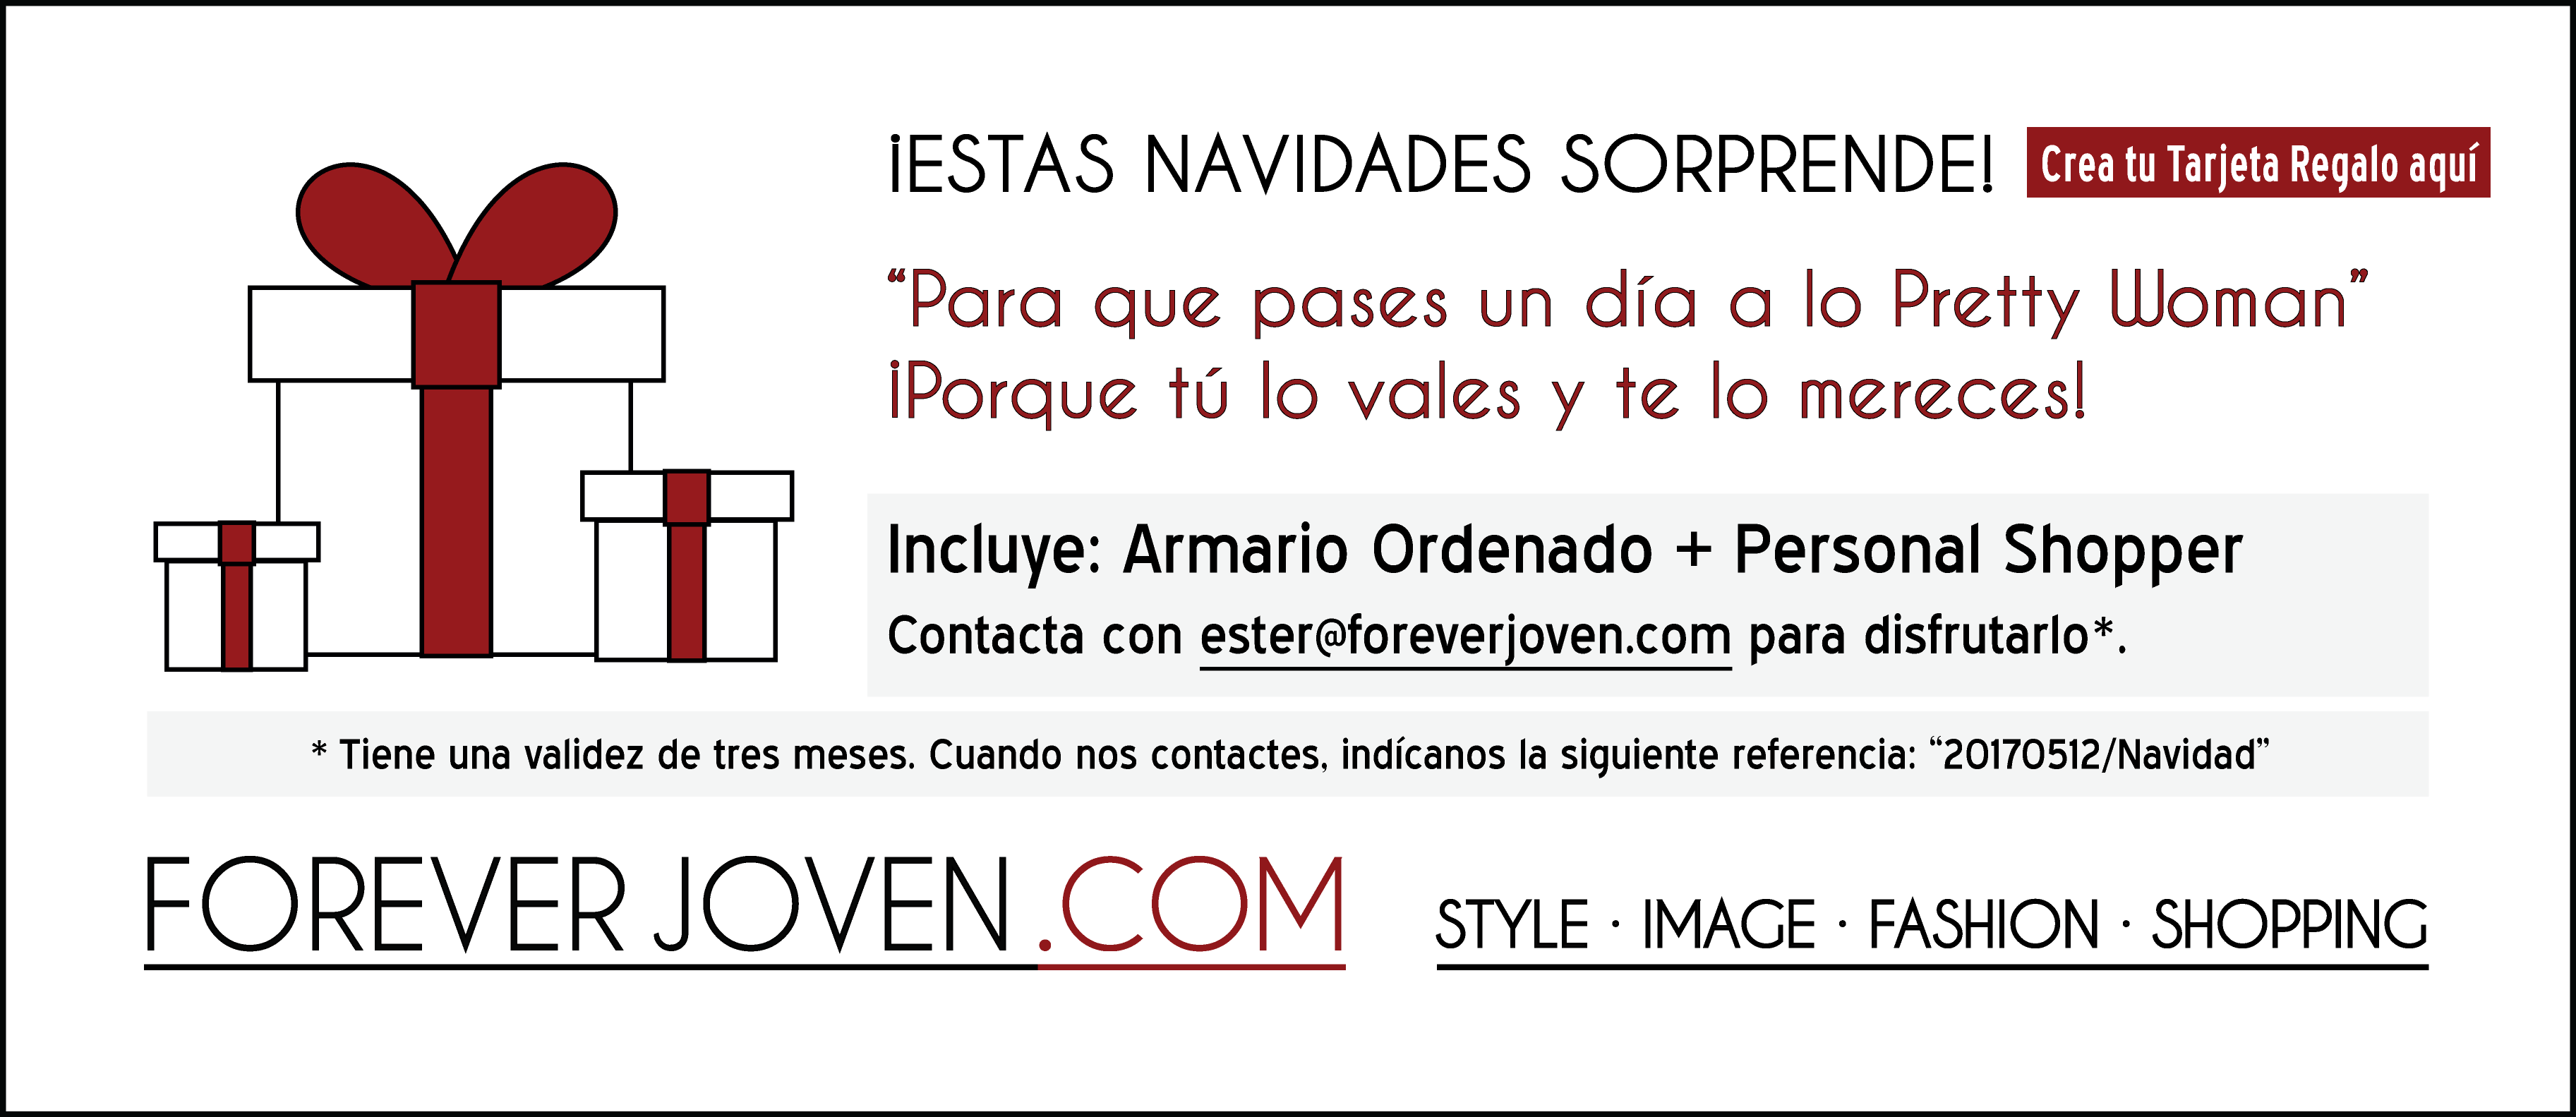 personal shopper low cost barcelona